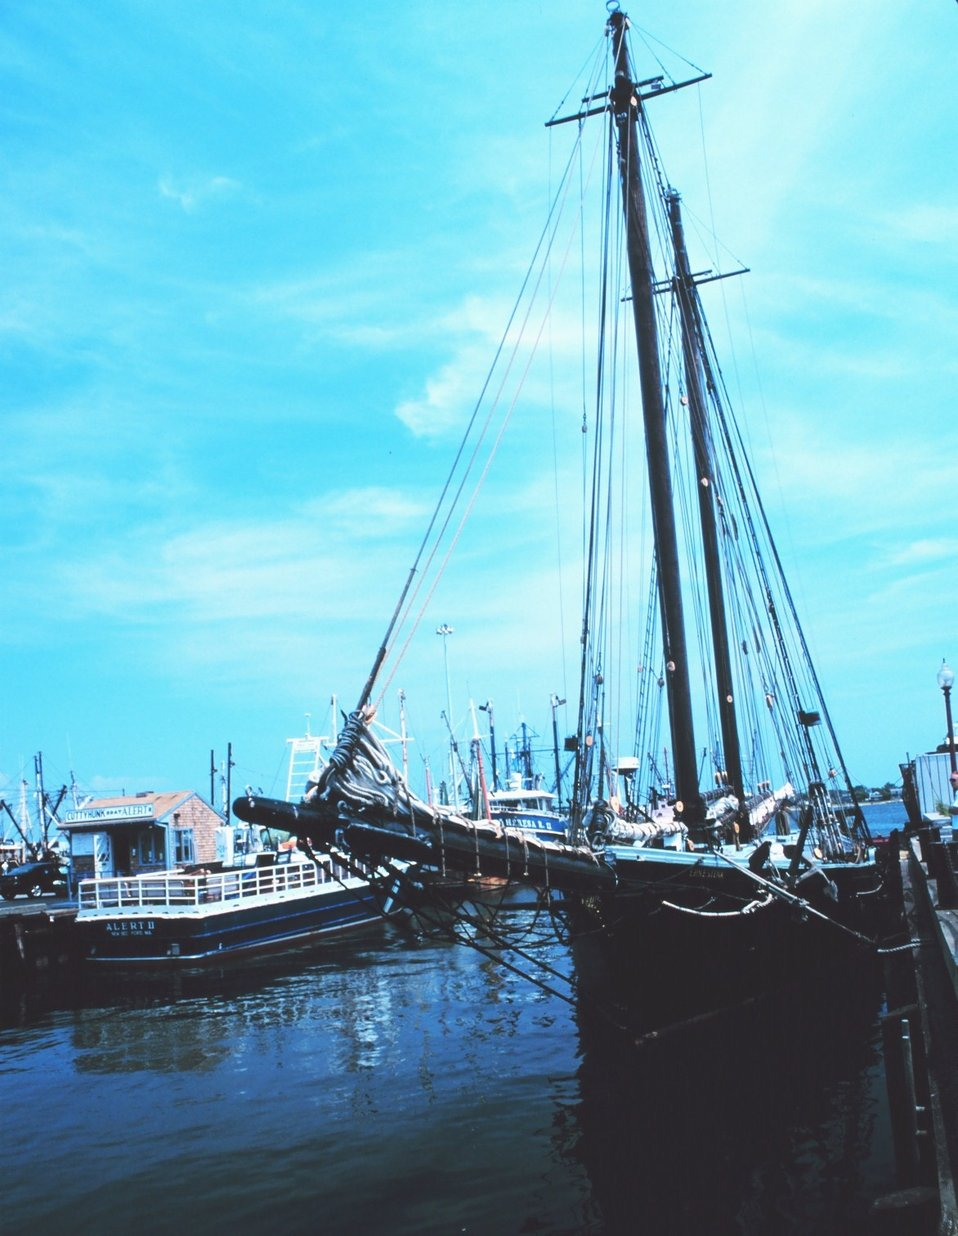 The old fishing schooner ERNESTINA at New Bedford Harbor.